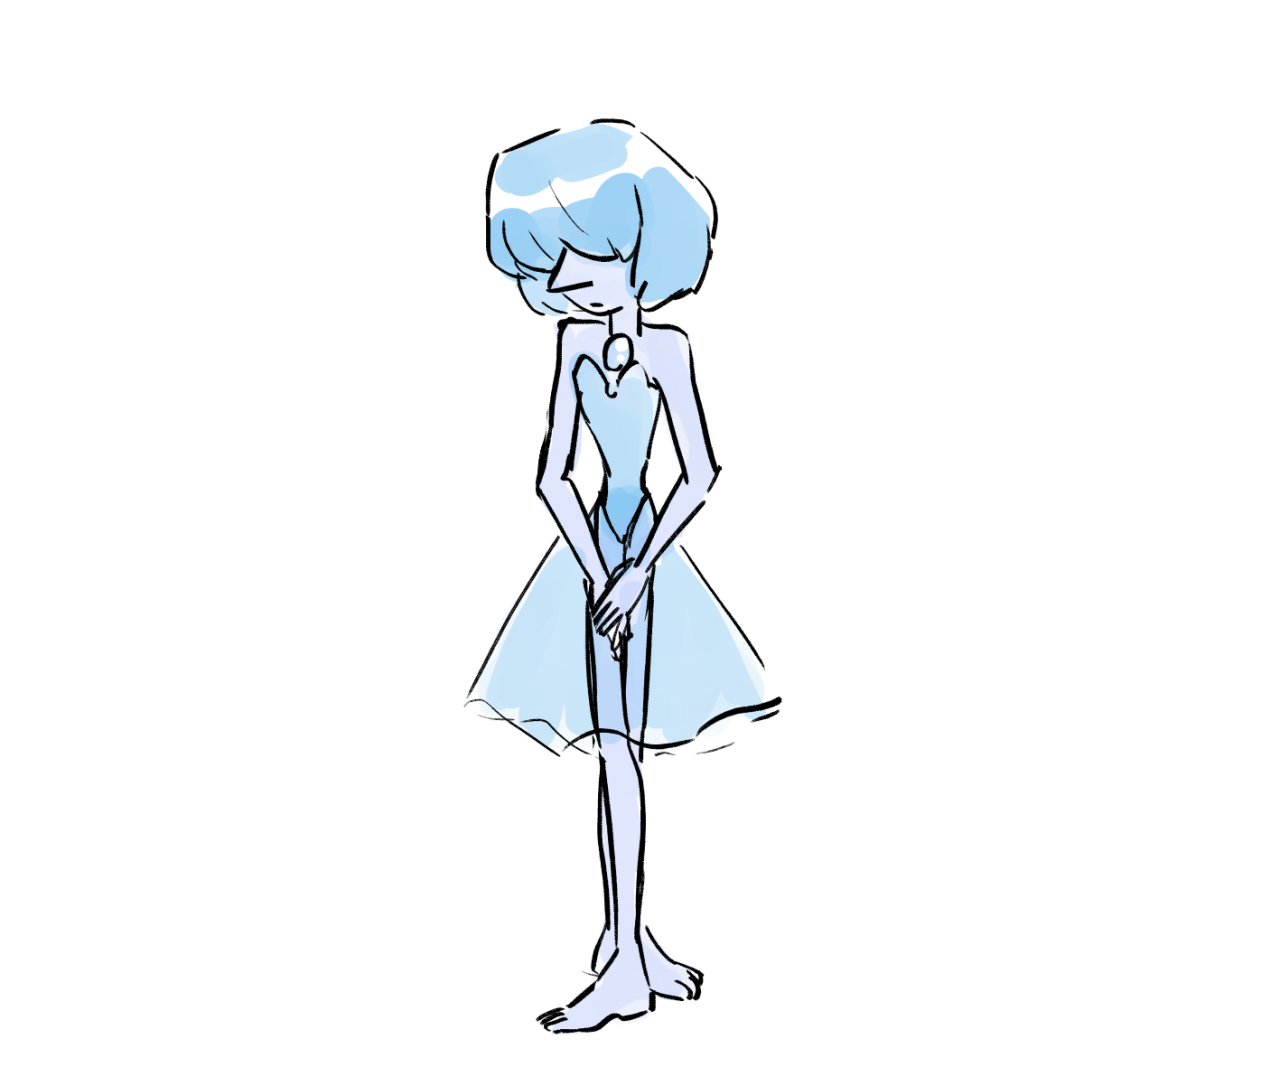 a blue pearl for someone in the stream